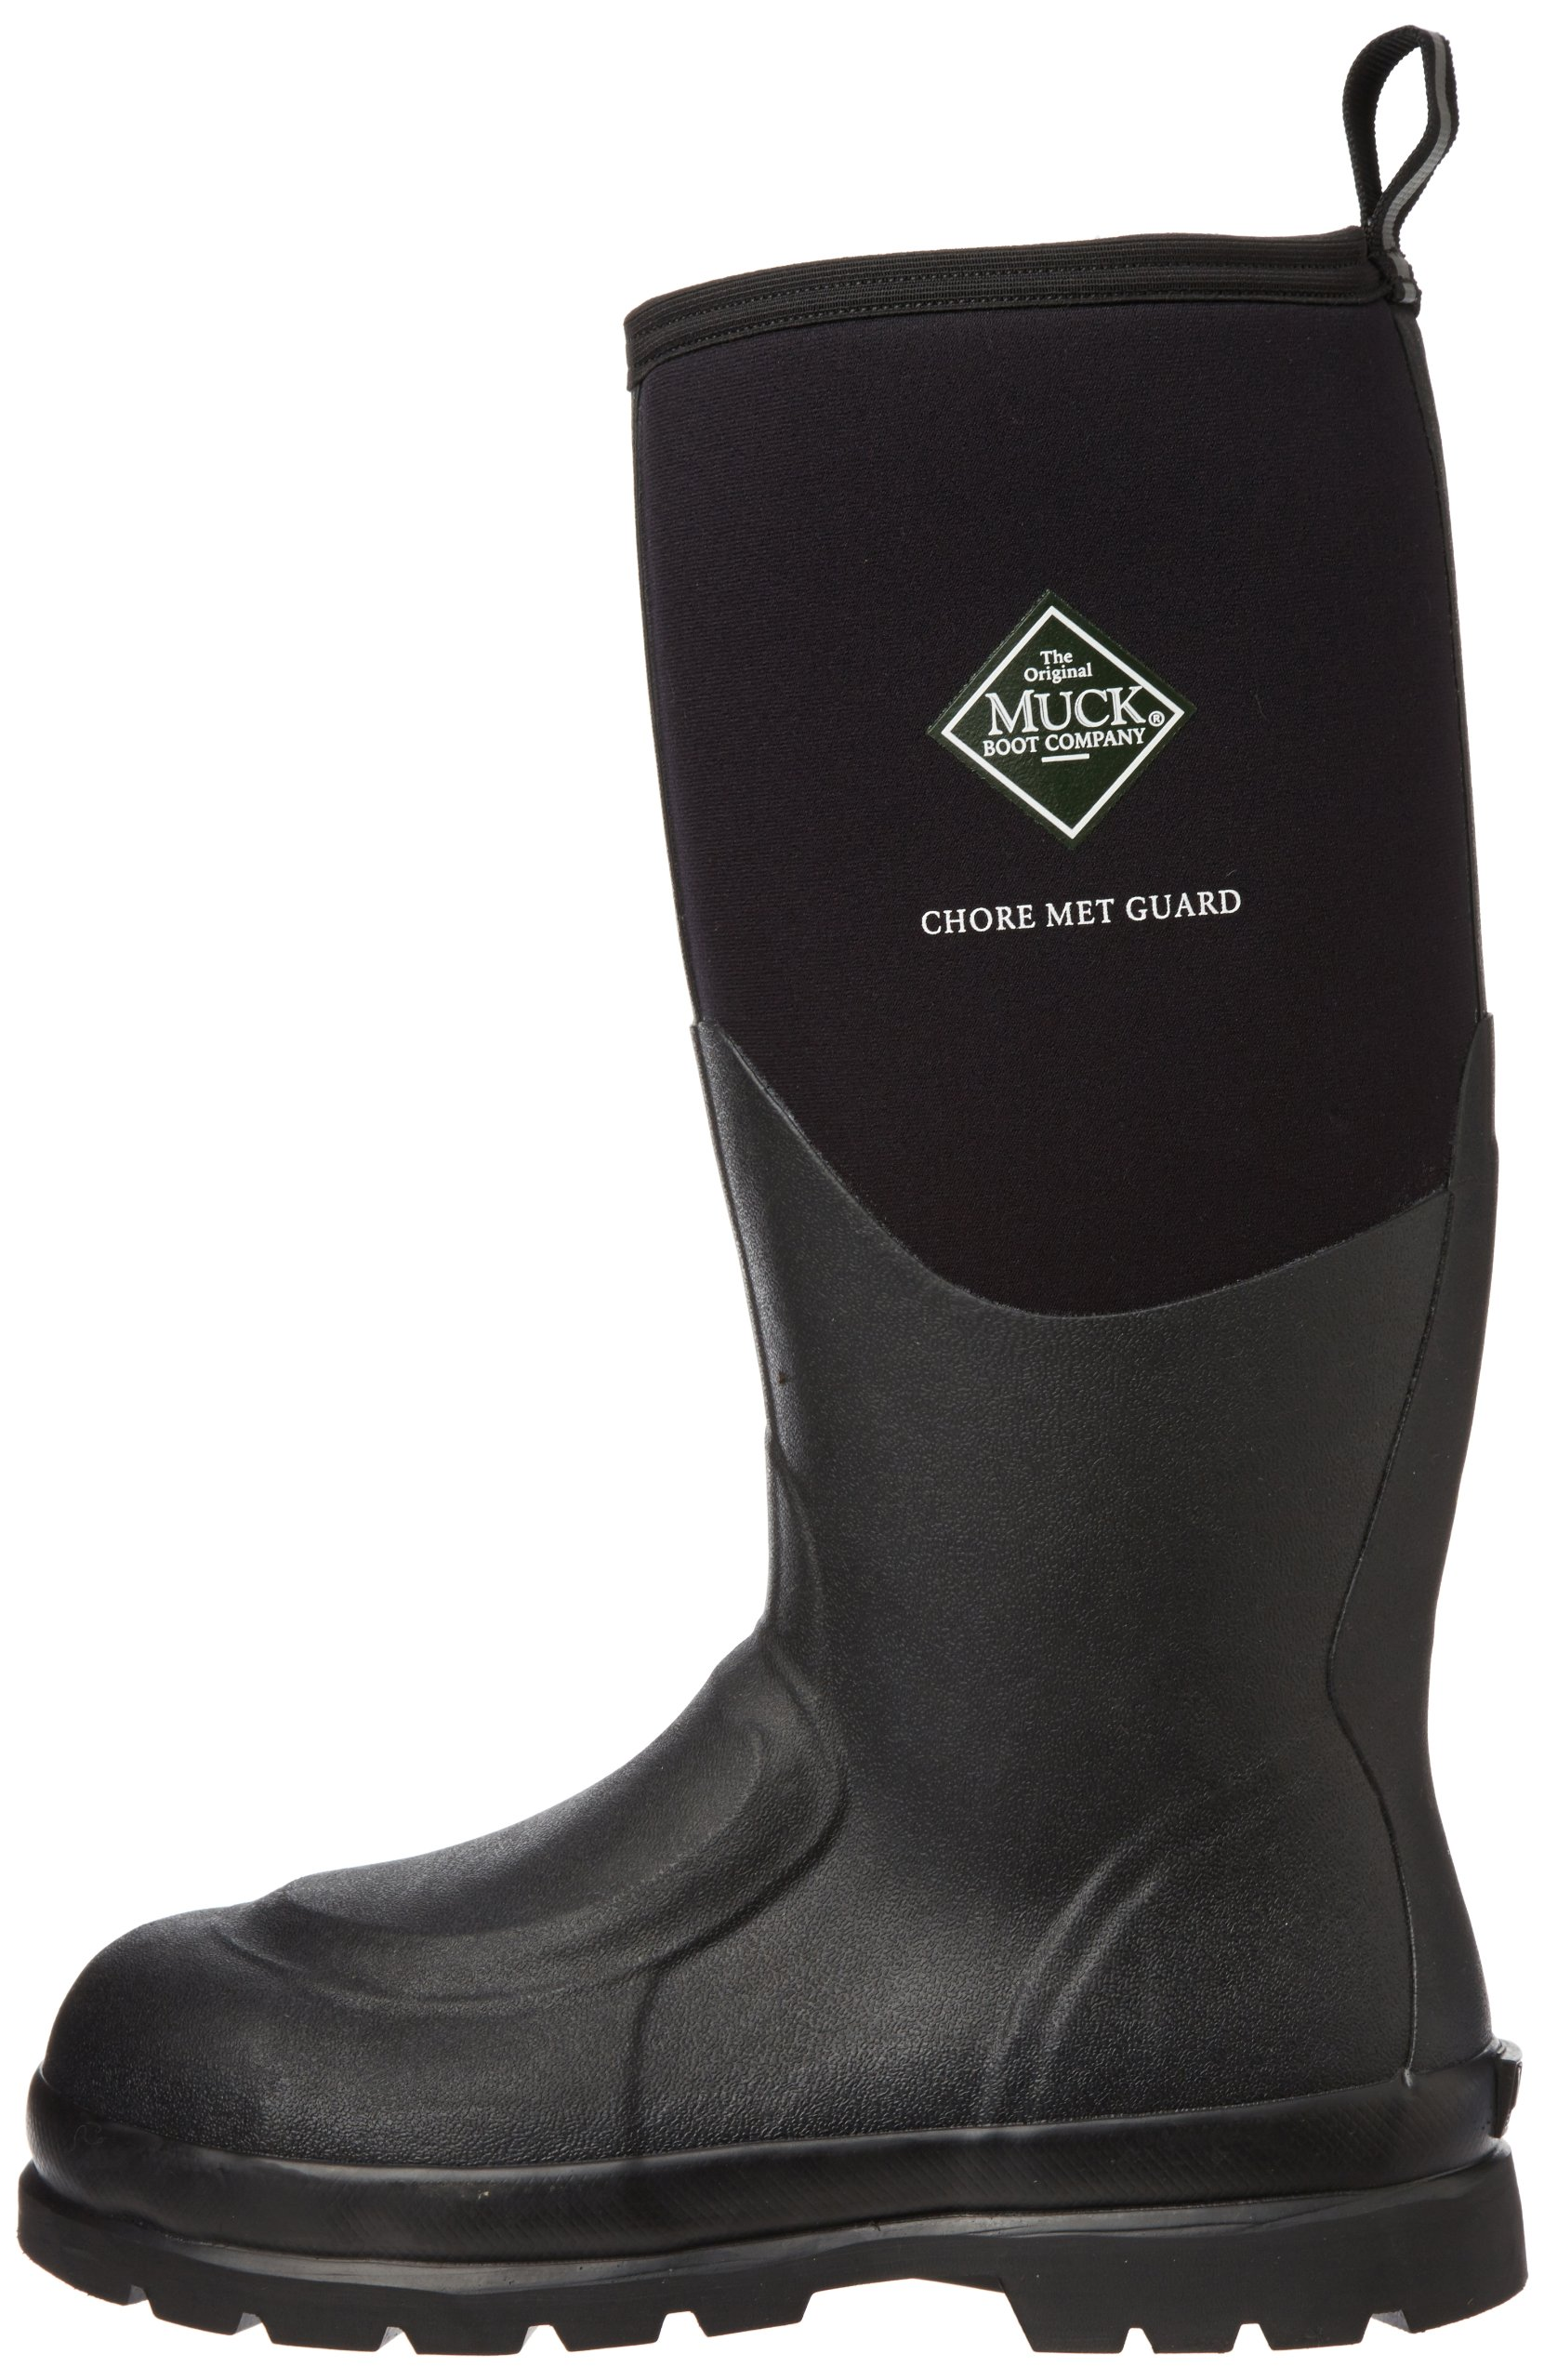 MuckBoots Men's Chore Safety Toe Metatarsal Work Boot,Black,10 M US by Muck Boot (Image #5)